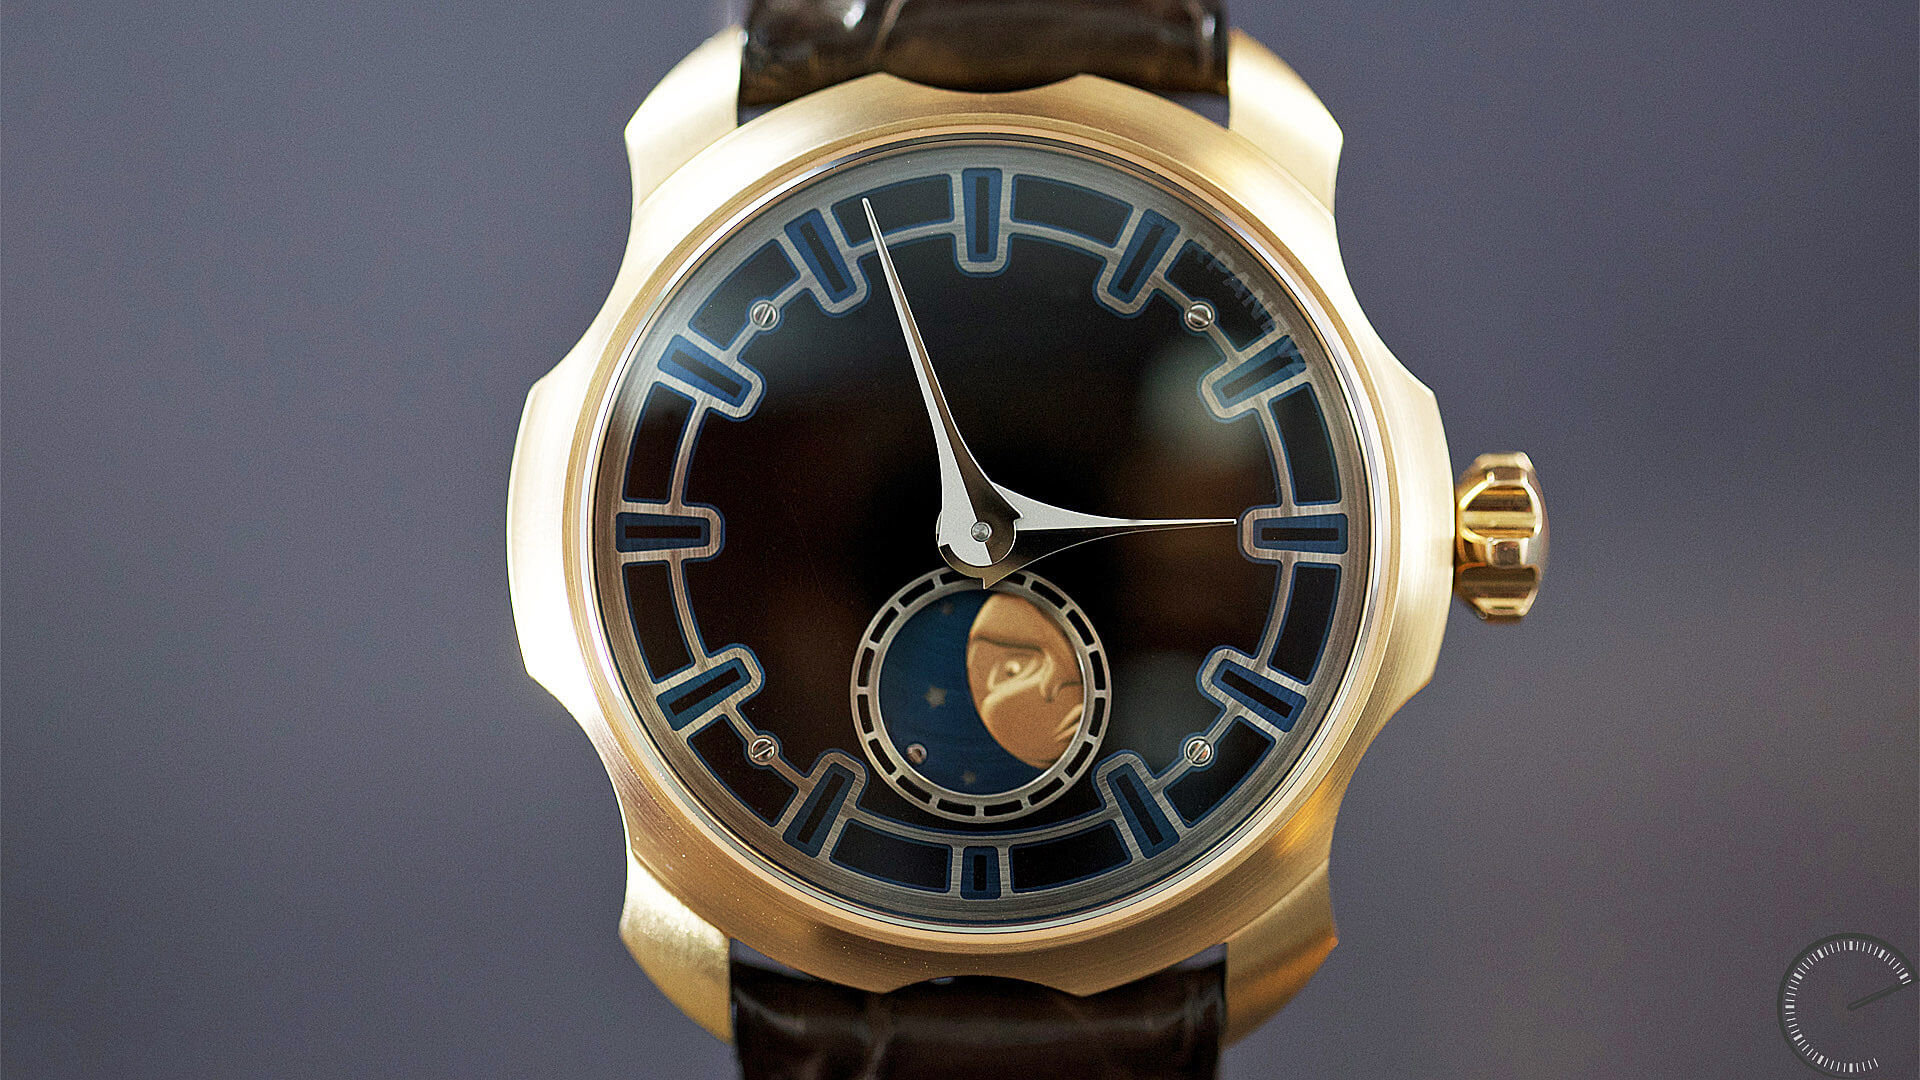 Image of Sarpaneva Watches - Northern Stars - Black Enamel dial by Donze Cadrans